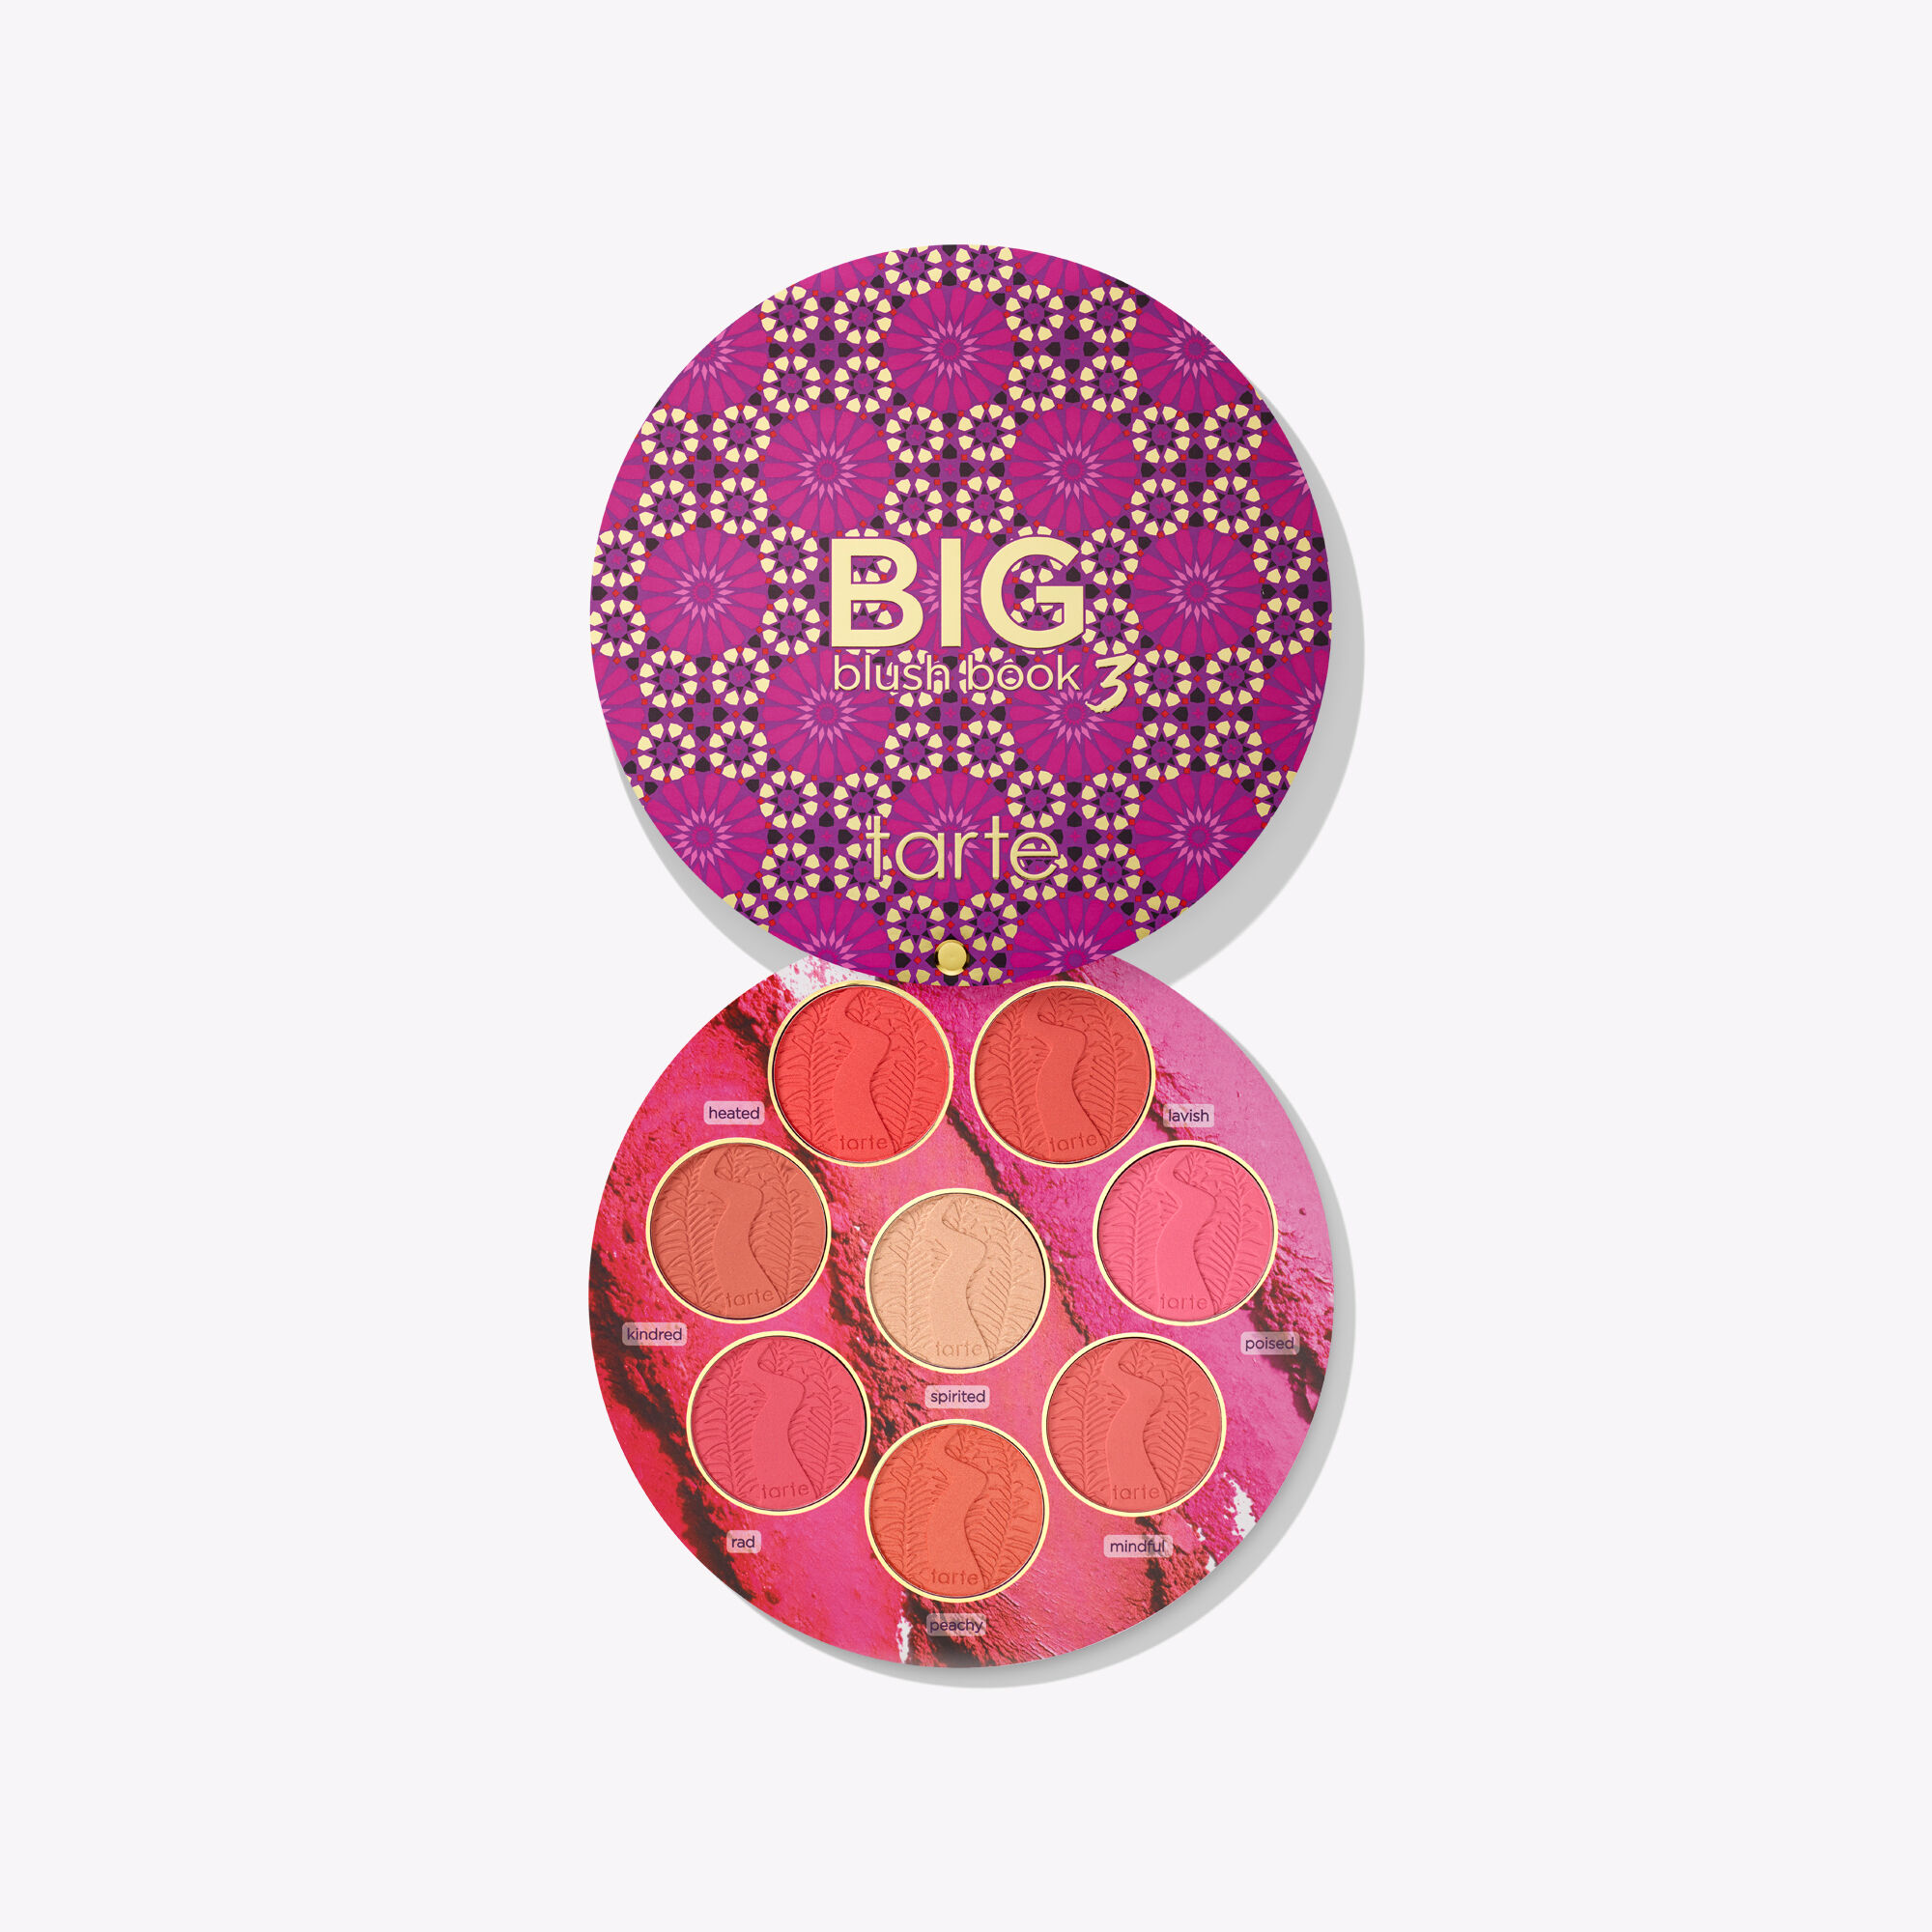 Tarte Big Blush Book Volume III